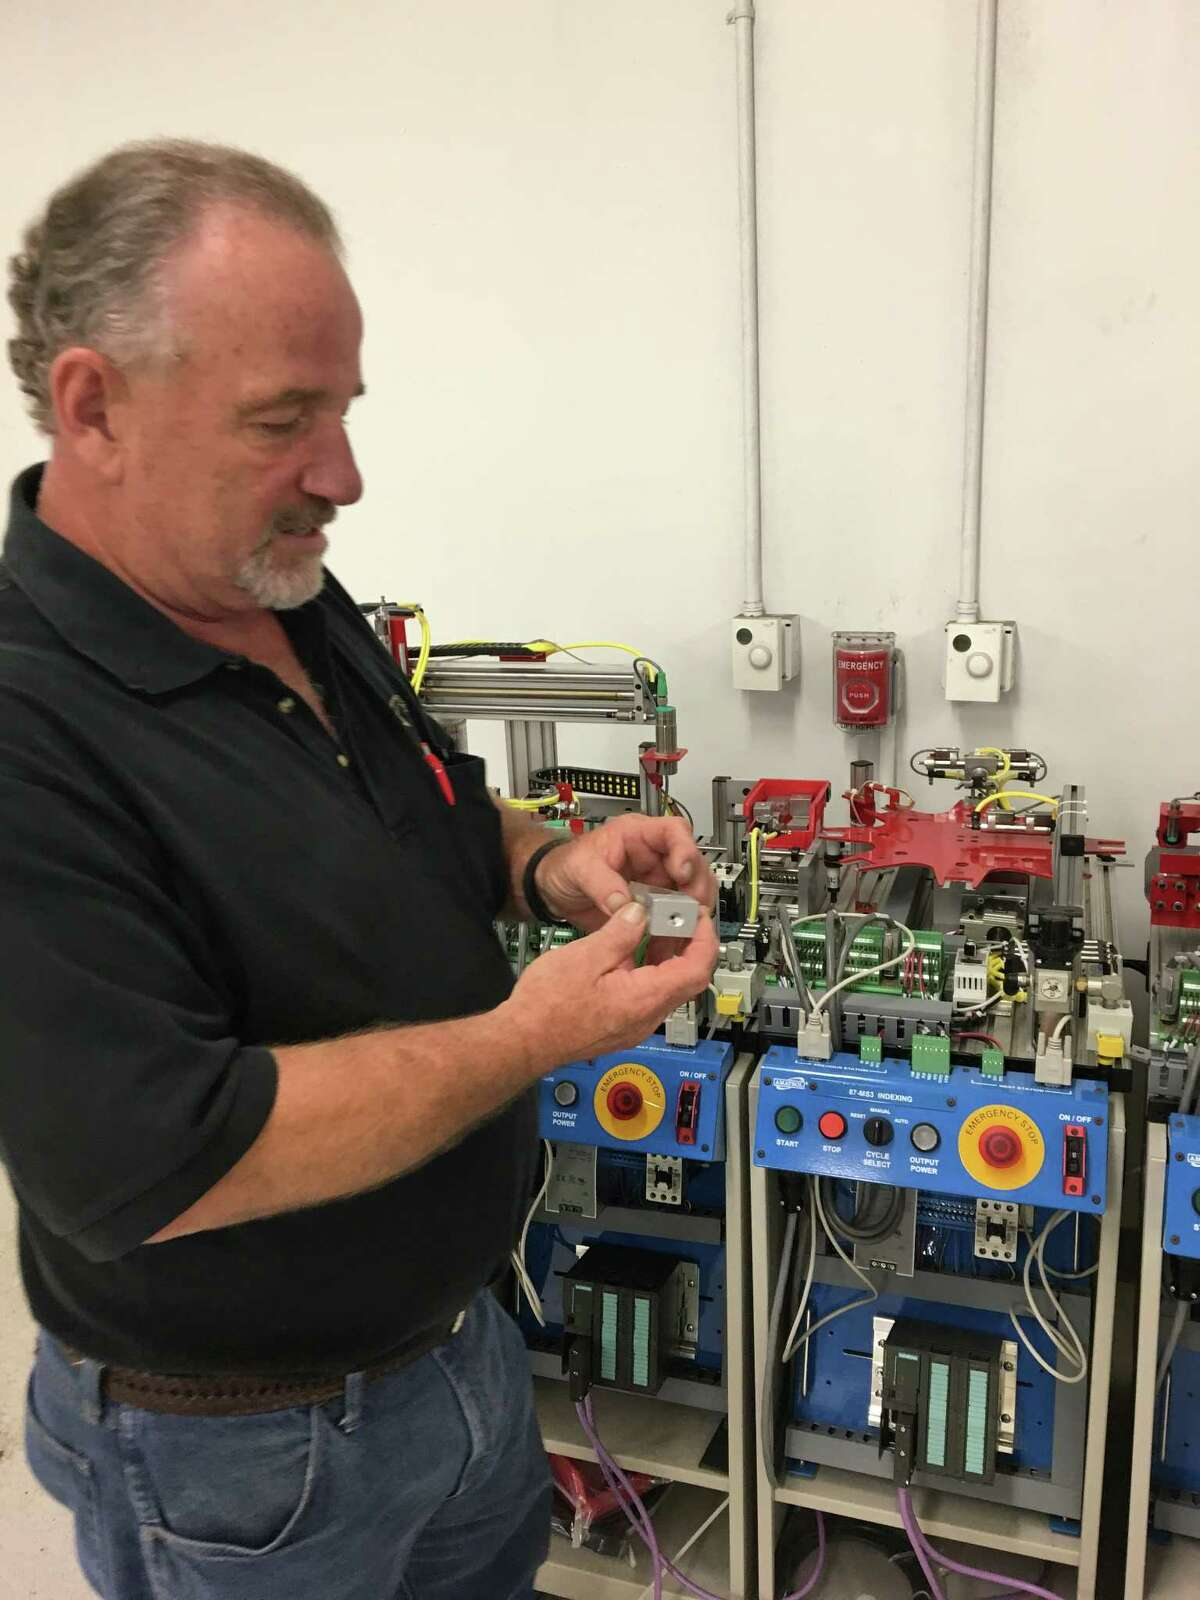 Mike Branch, the lead mechatronics instructor at Houston's Lone Star College, explains the equipment used to train students for advanced manufacturing jobs.